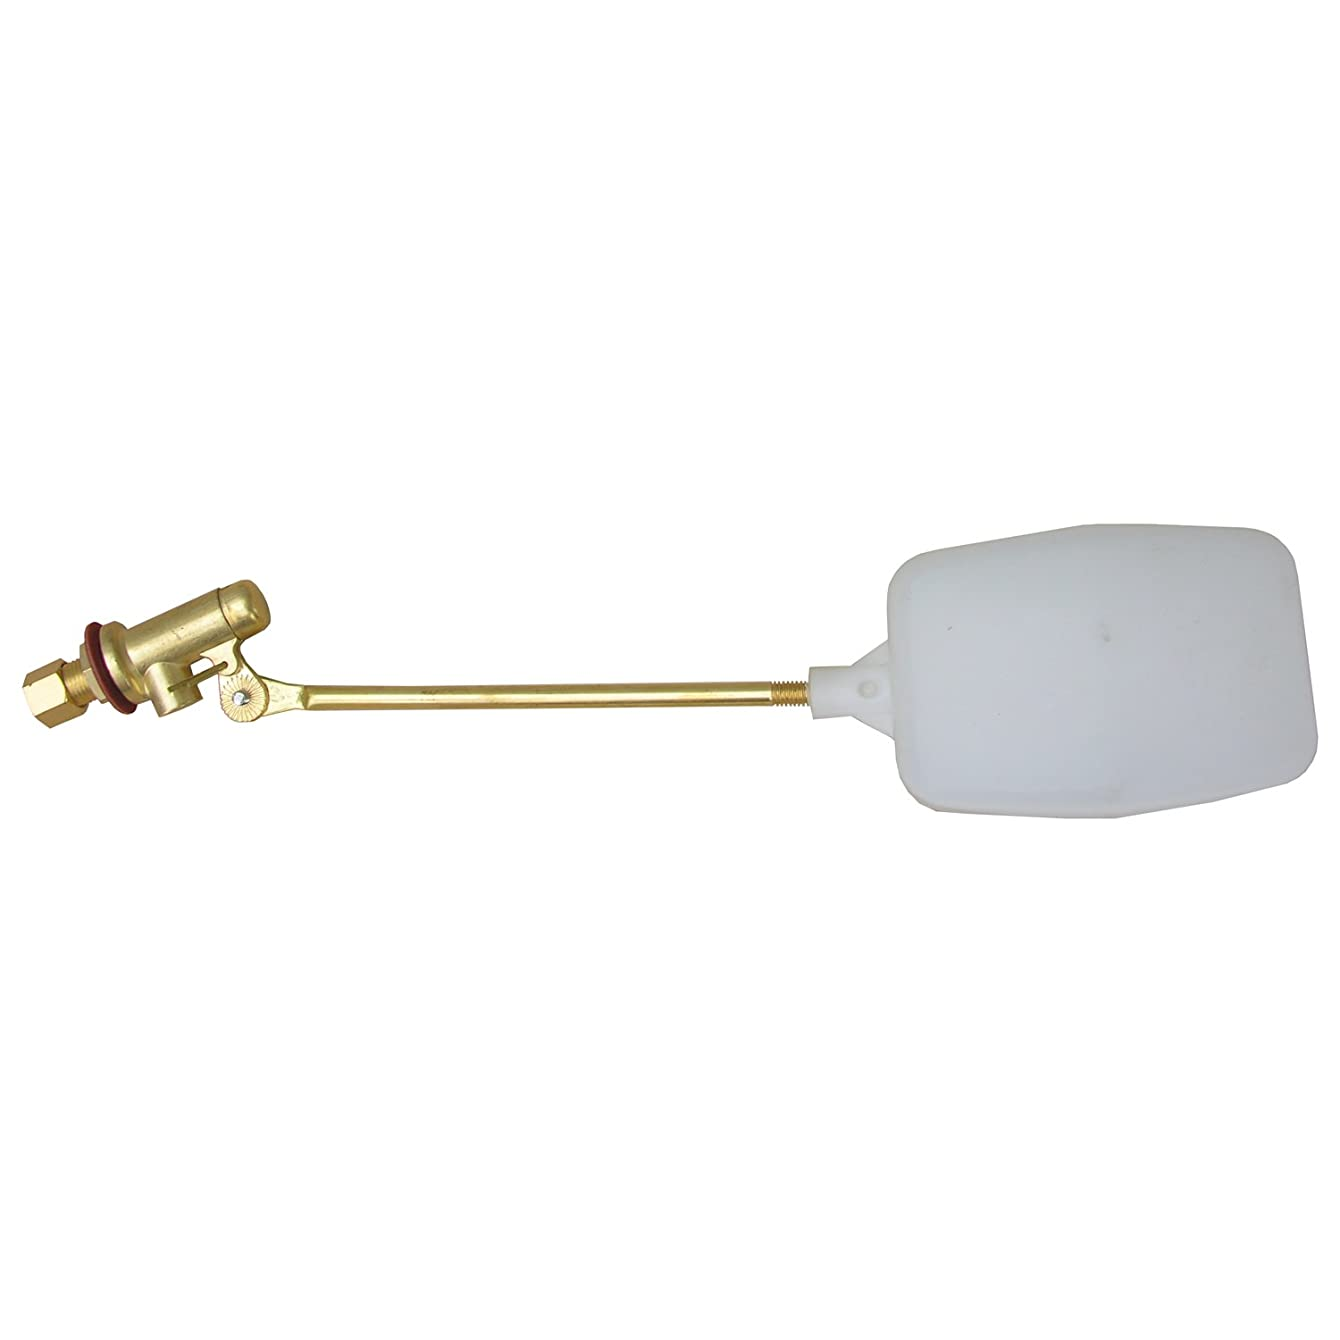 LASCO 05-1051 Heavy Duty 1/4-Inch Compression Evaporative Swamp Cooler Float Valve, Brass